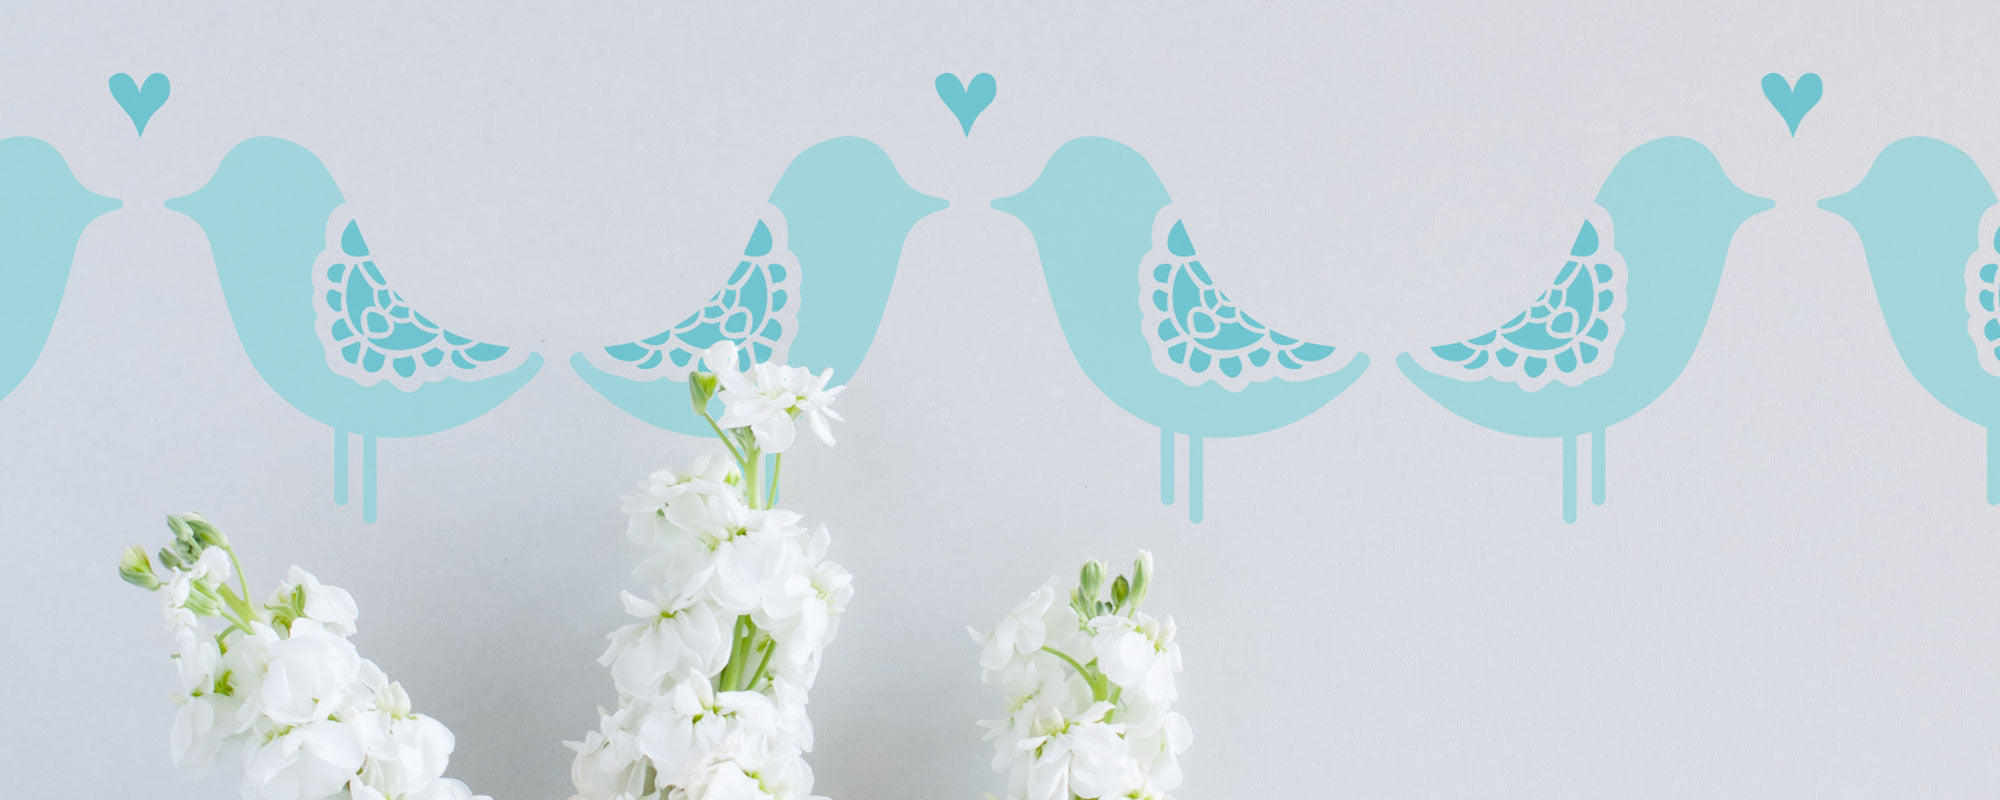 love birds stencil bird and butterfly stencils collection banner